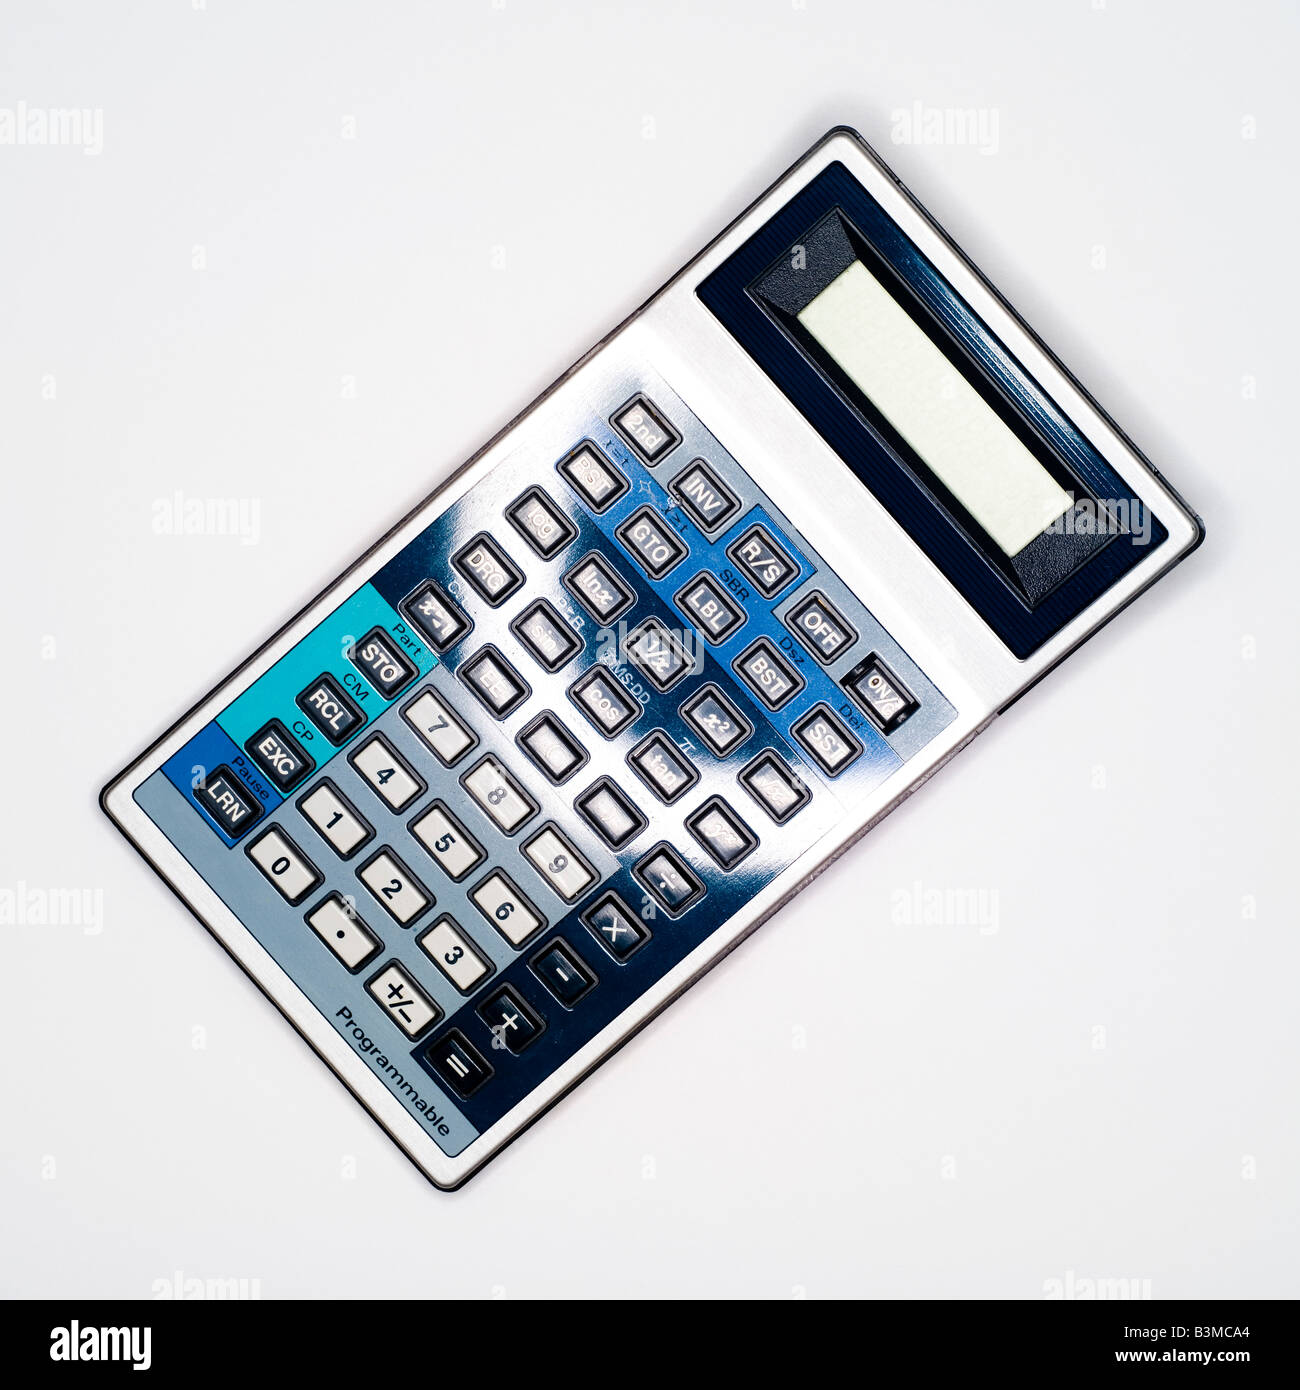 Calculator, elevated view - Stock Image